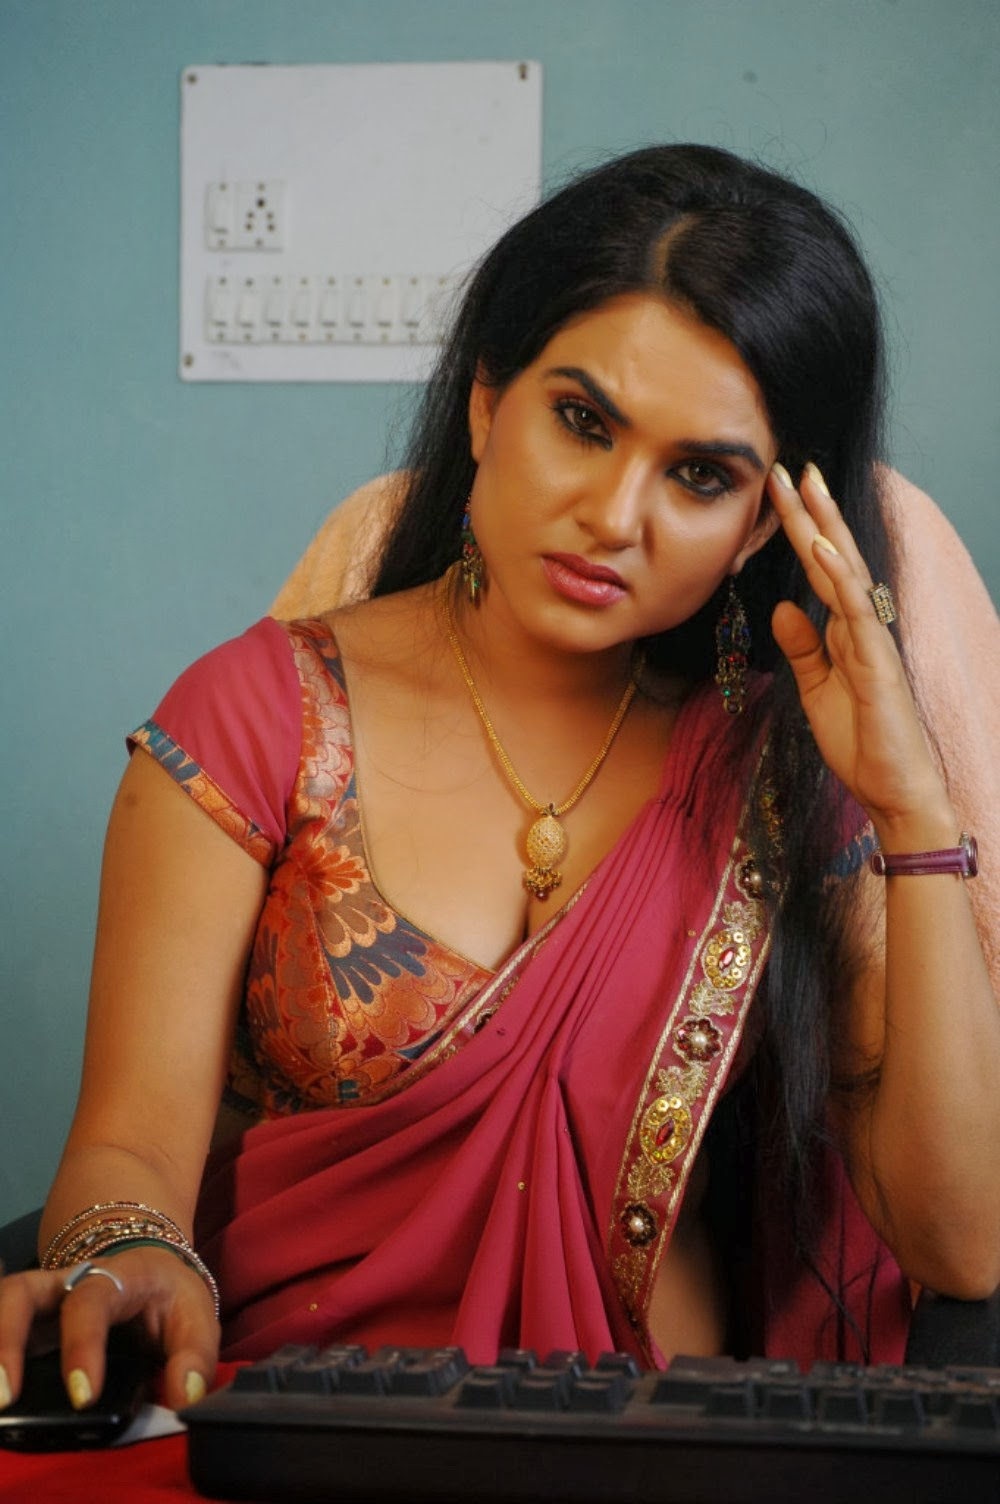 hot sexy reveling Kavya singh latest hot photos in red saree